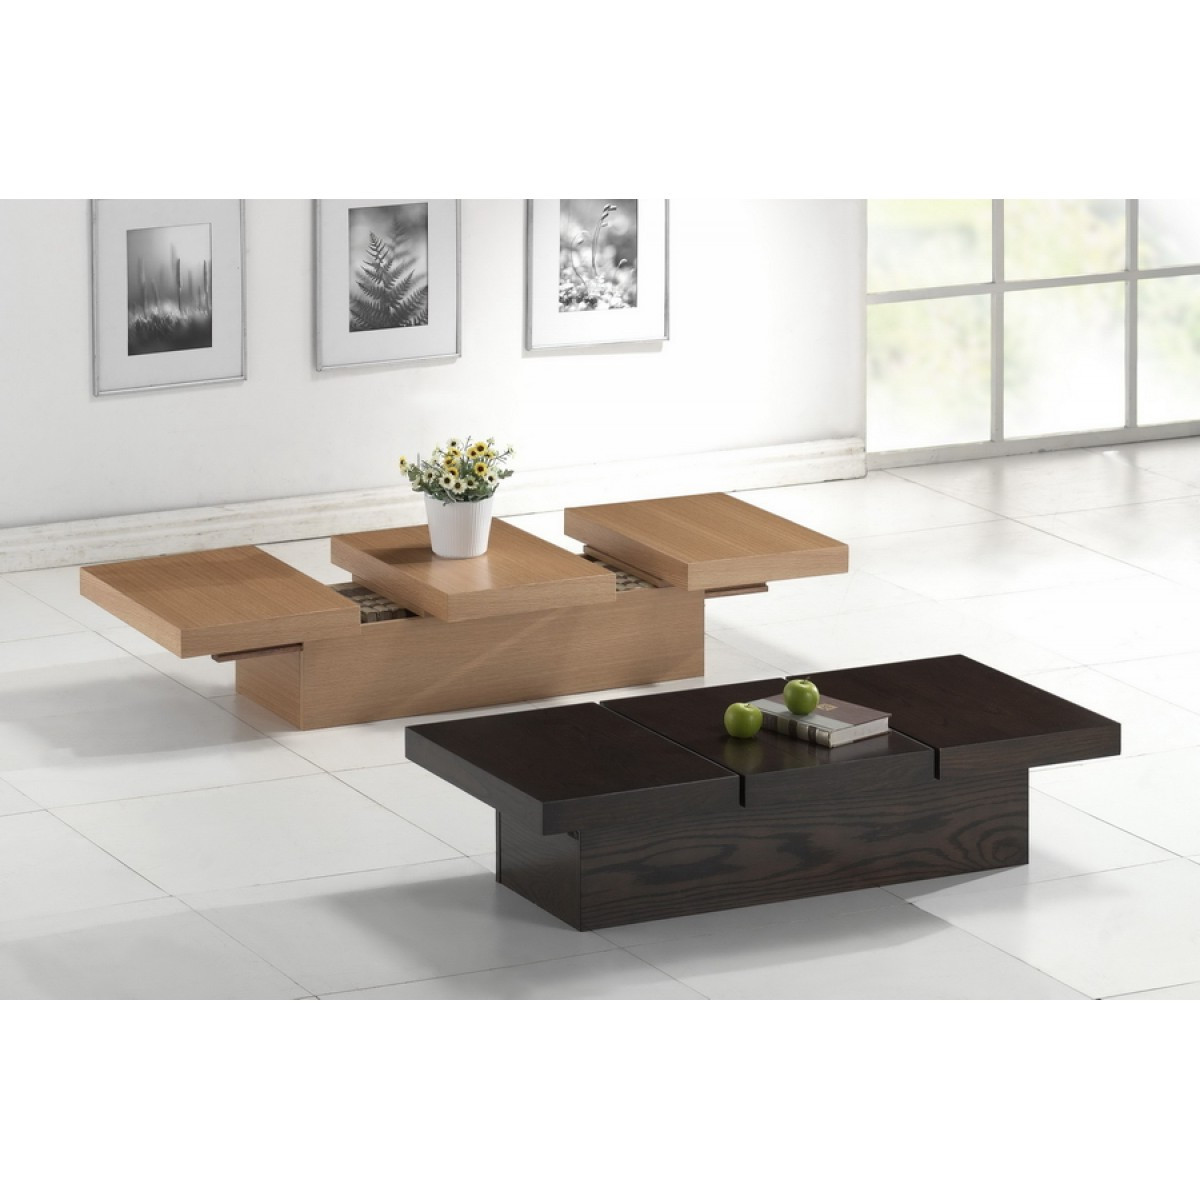 Table modern living room by moshir furniture living room for Contemporary living room furniture sets